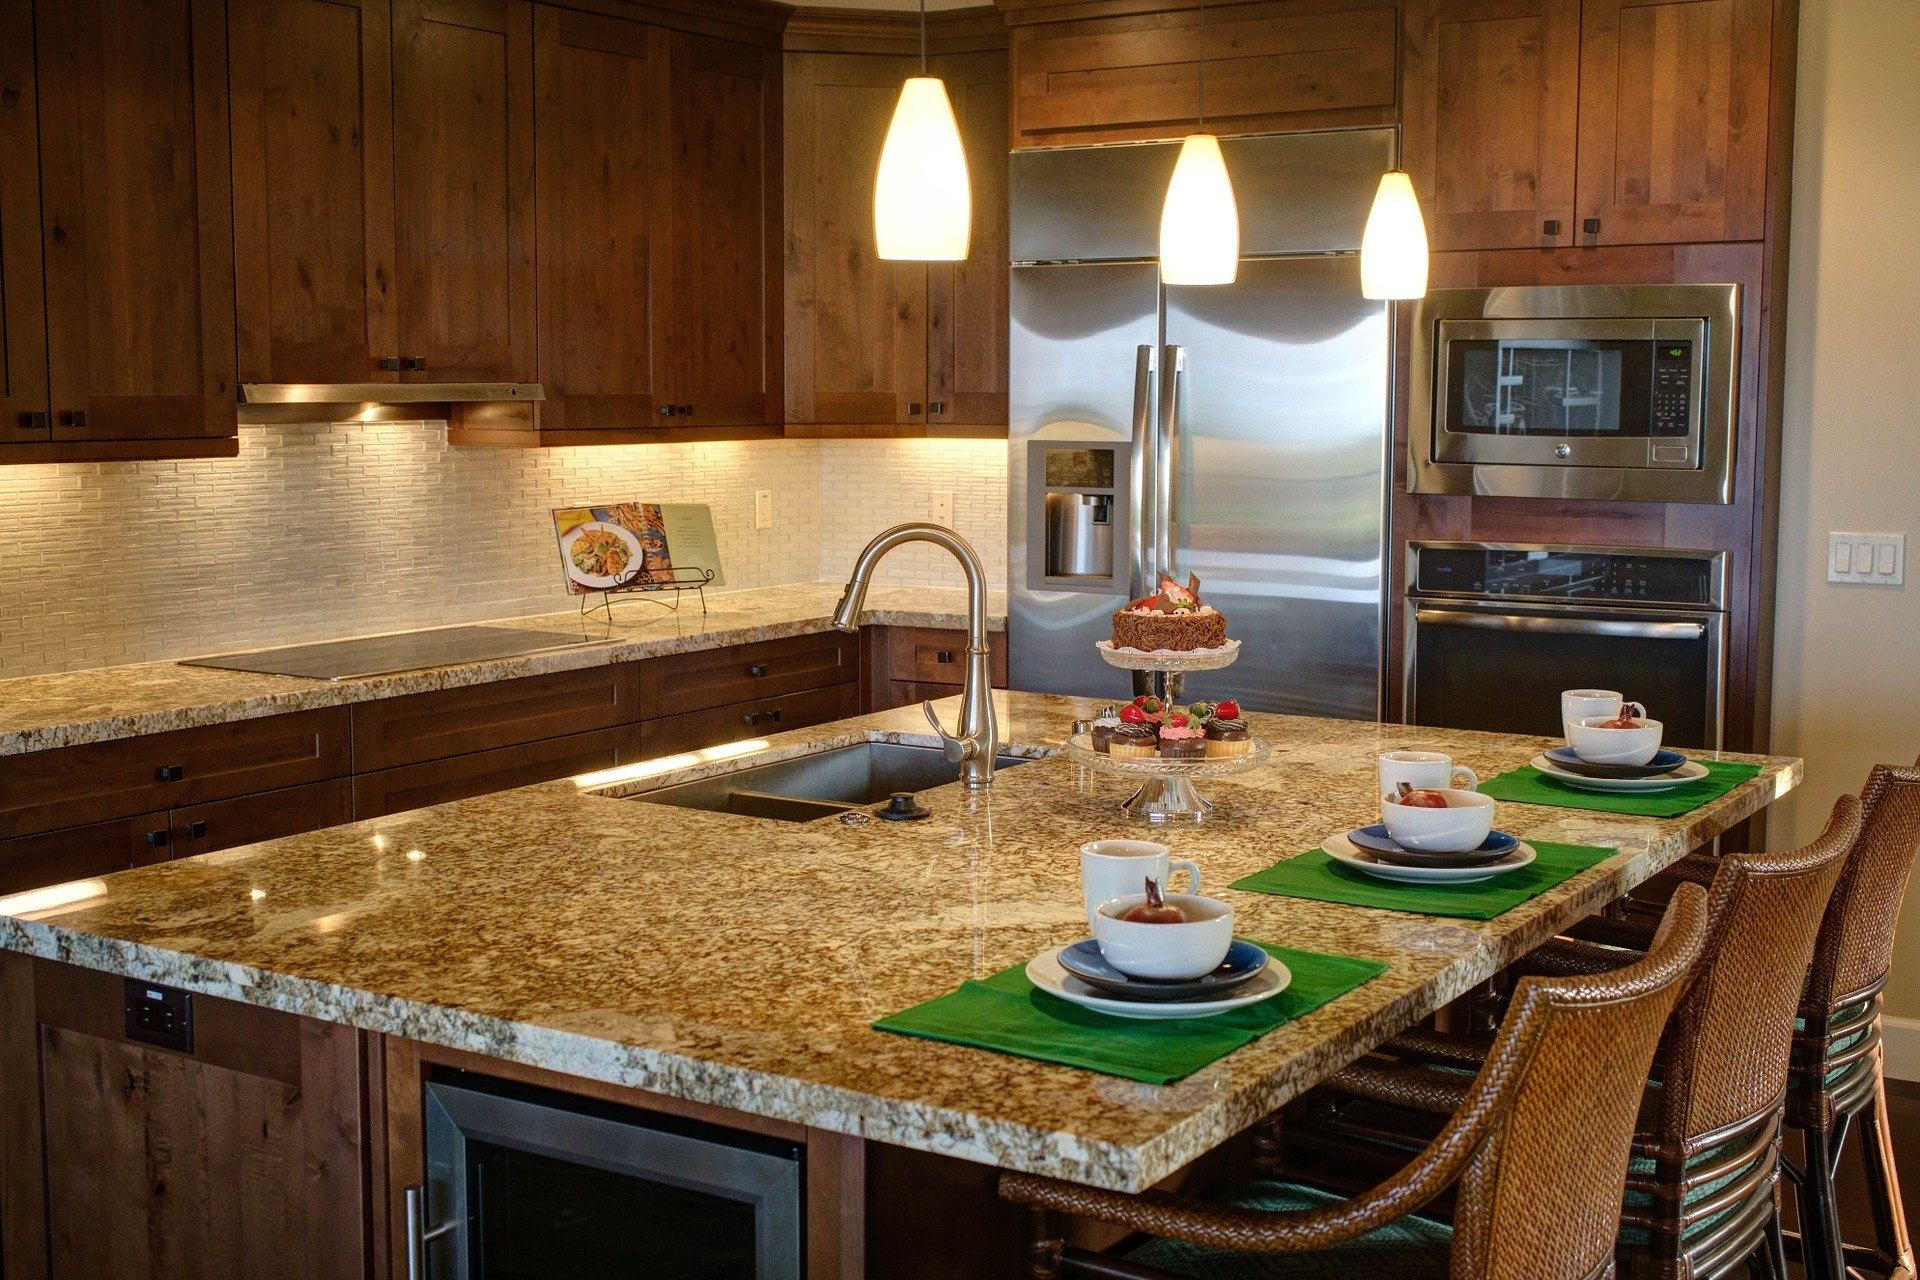 Tampa Custom Kitchen Remodeling Pros - countertops, bathrooms, renovations, custom cabinets, flooring-81-We do great kitchen & bath remodeling, home renovations, custom lighting, custom cabinet installation, cabinet refacing and refinishing, outdoor kitchens, commercial kitchen, countertops and more